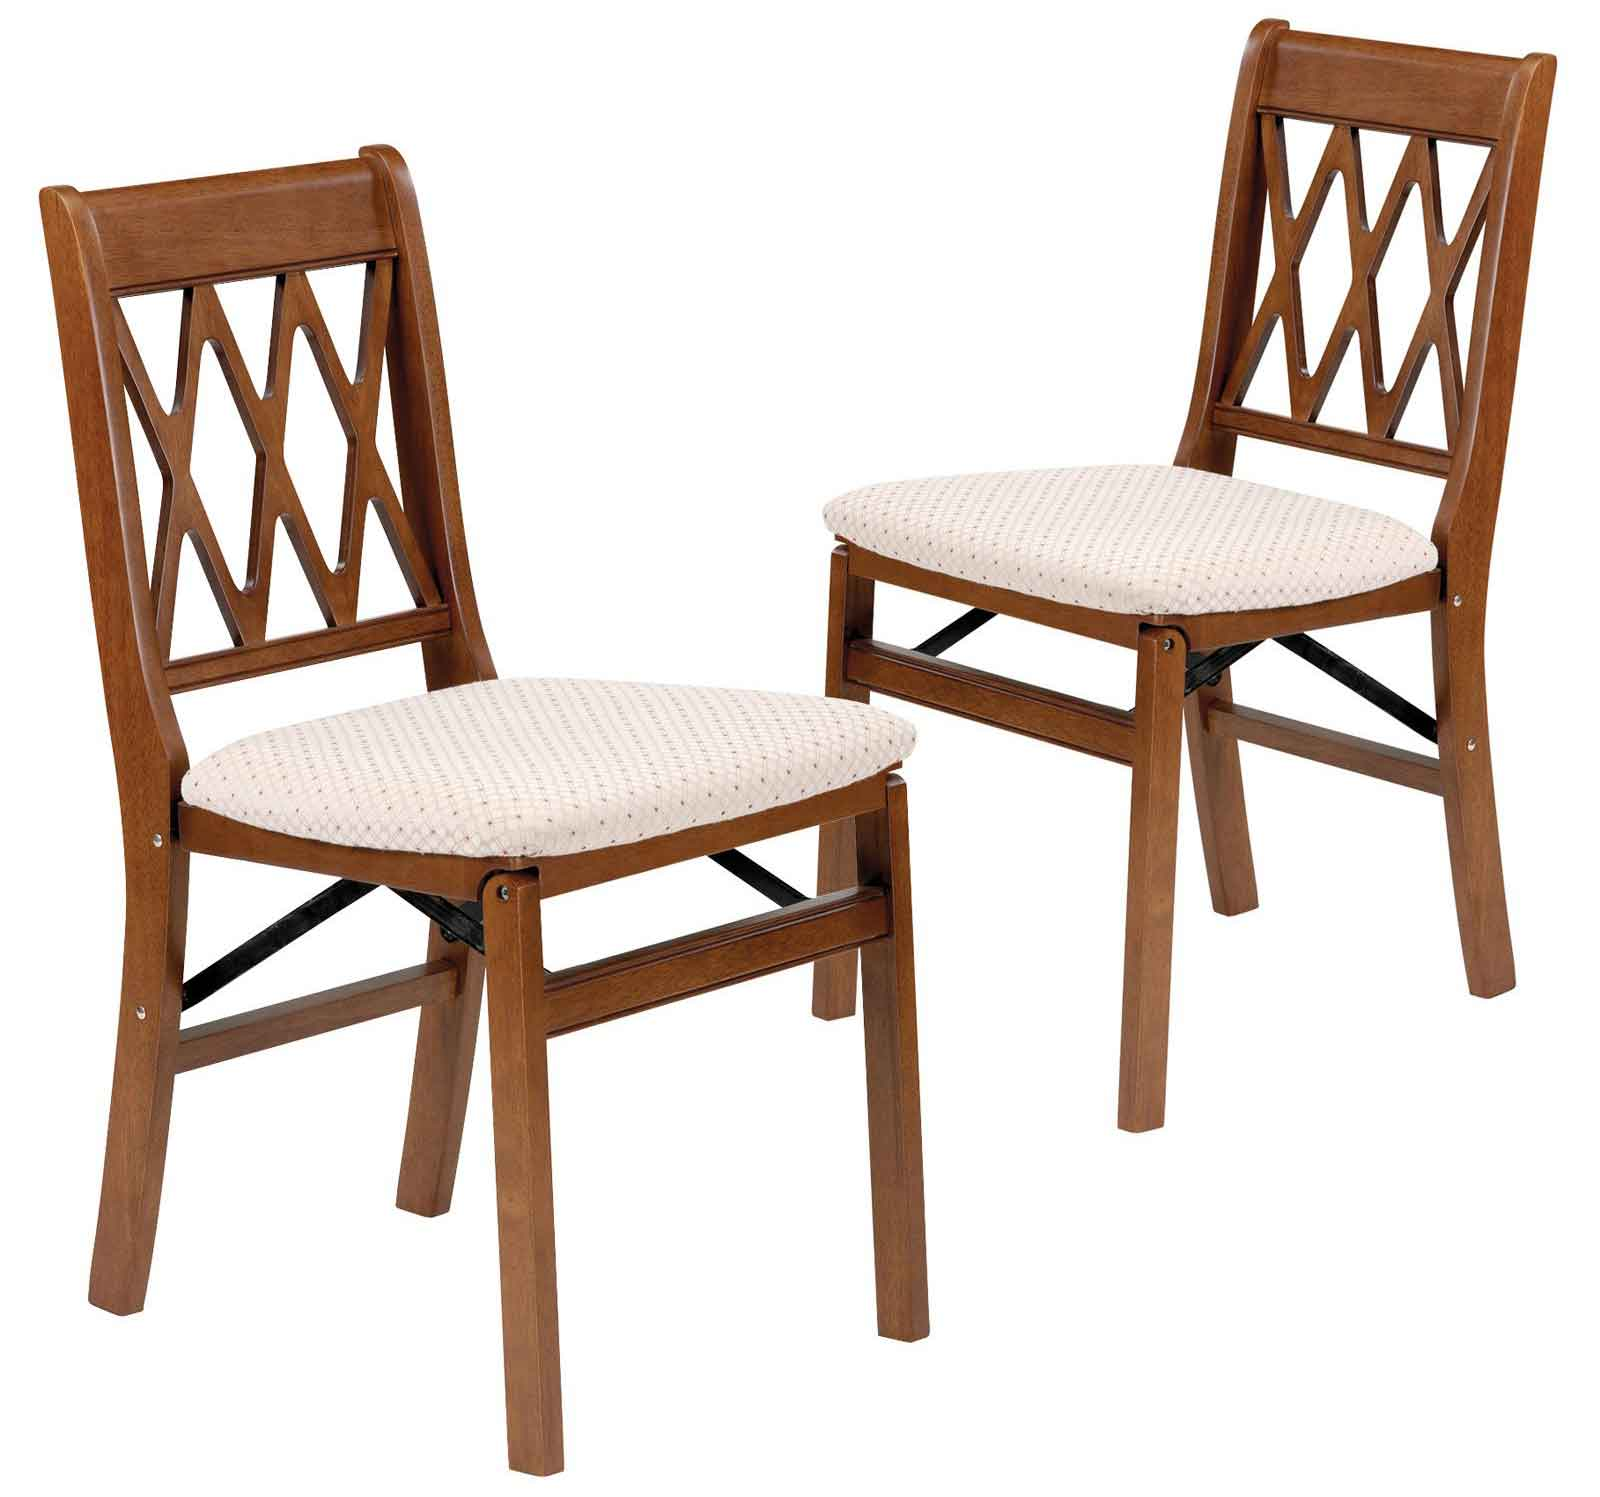 Stakmore Lattice Upholstered Seat Wood Folding Chairs